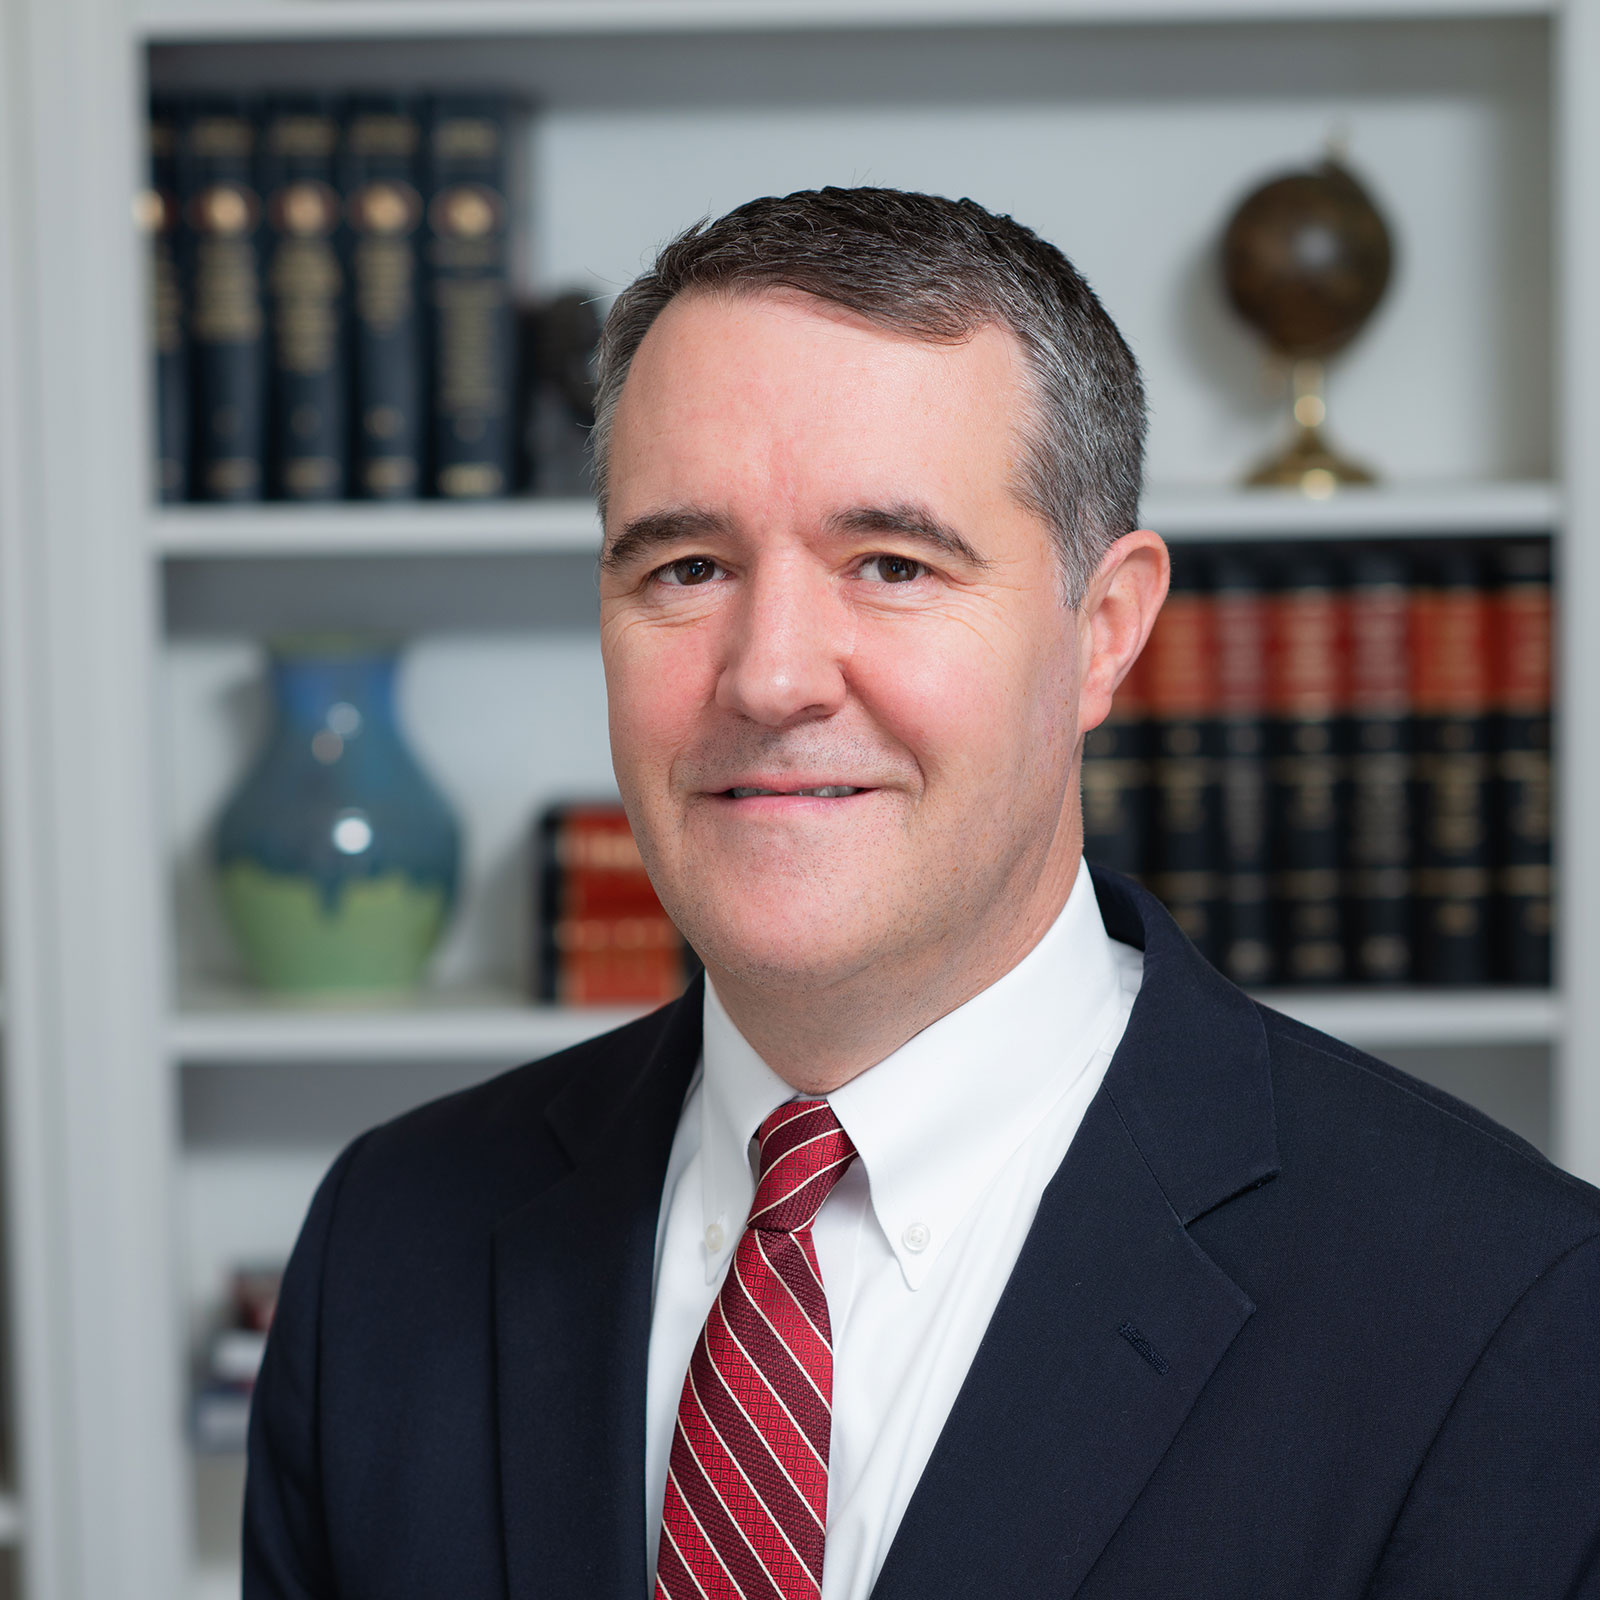 Head shot of Lawton Jordan, a business attorney serving corporate and SMB clients in and around Decatur, Georgia.